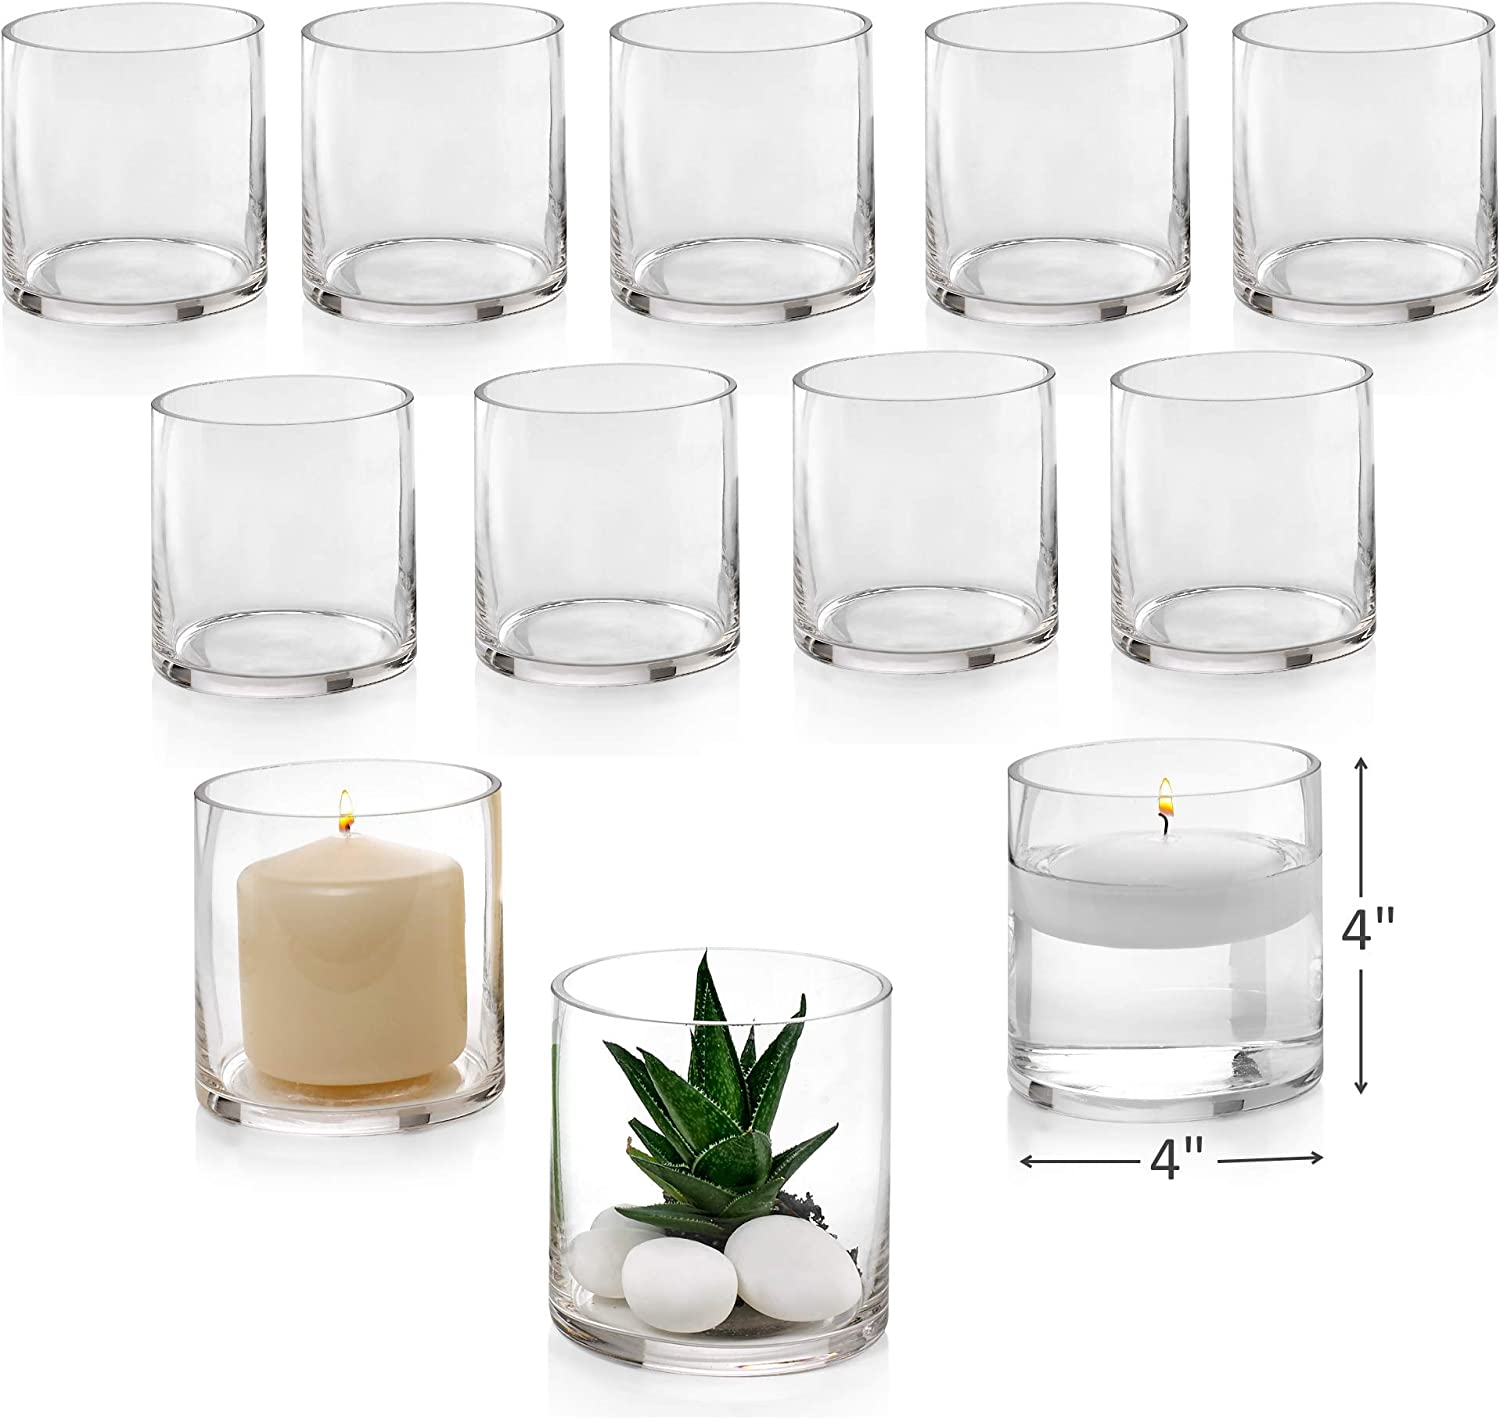 Set of 12 Glass Cylinder Vases 4 Inch Tall - Multi-use: Pillar Candle, Floating Candles Holders or Flower Vase – Perfect as a Wedding Centerpieces.